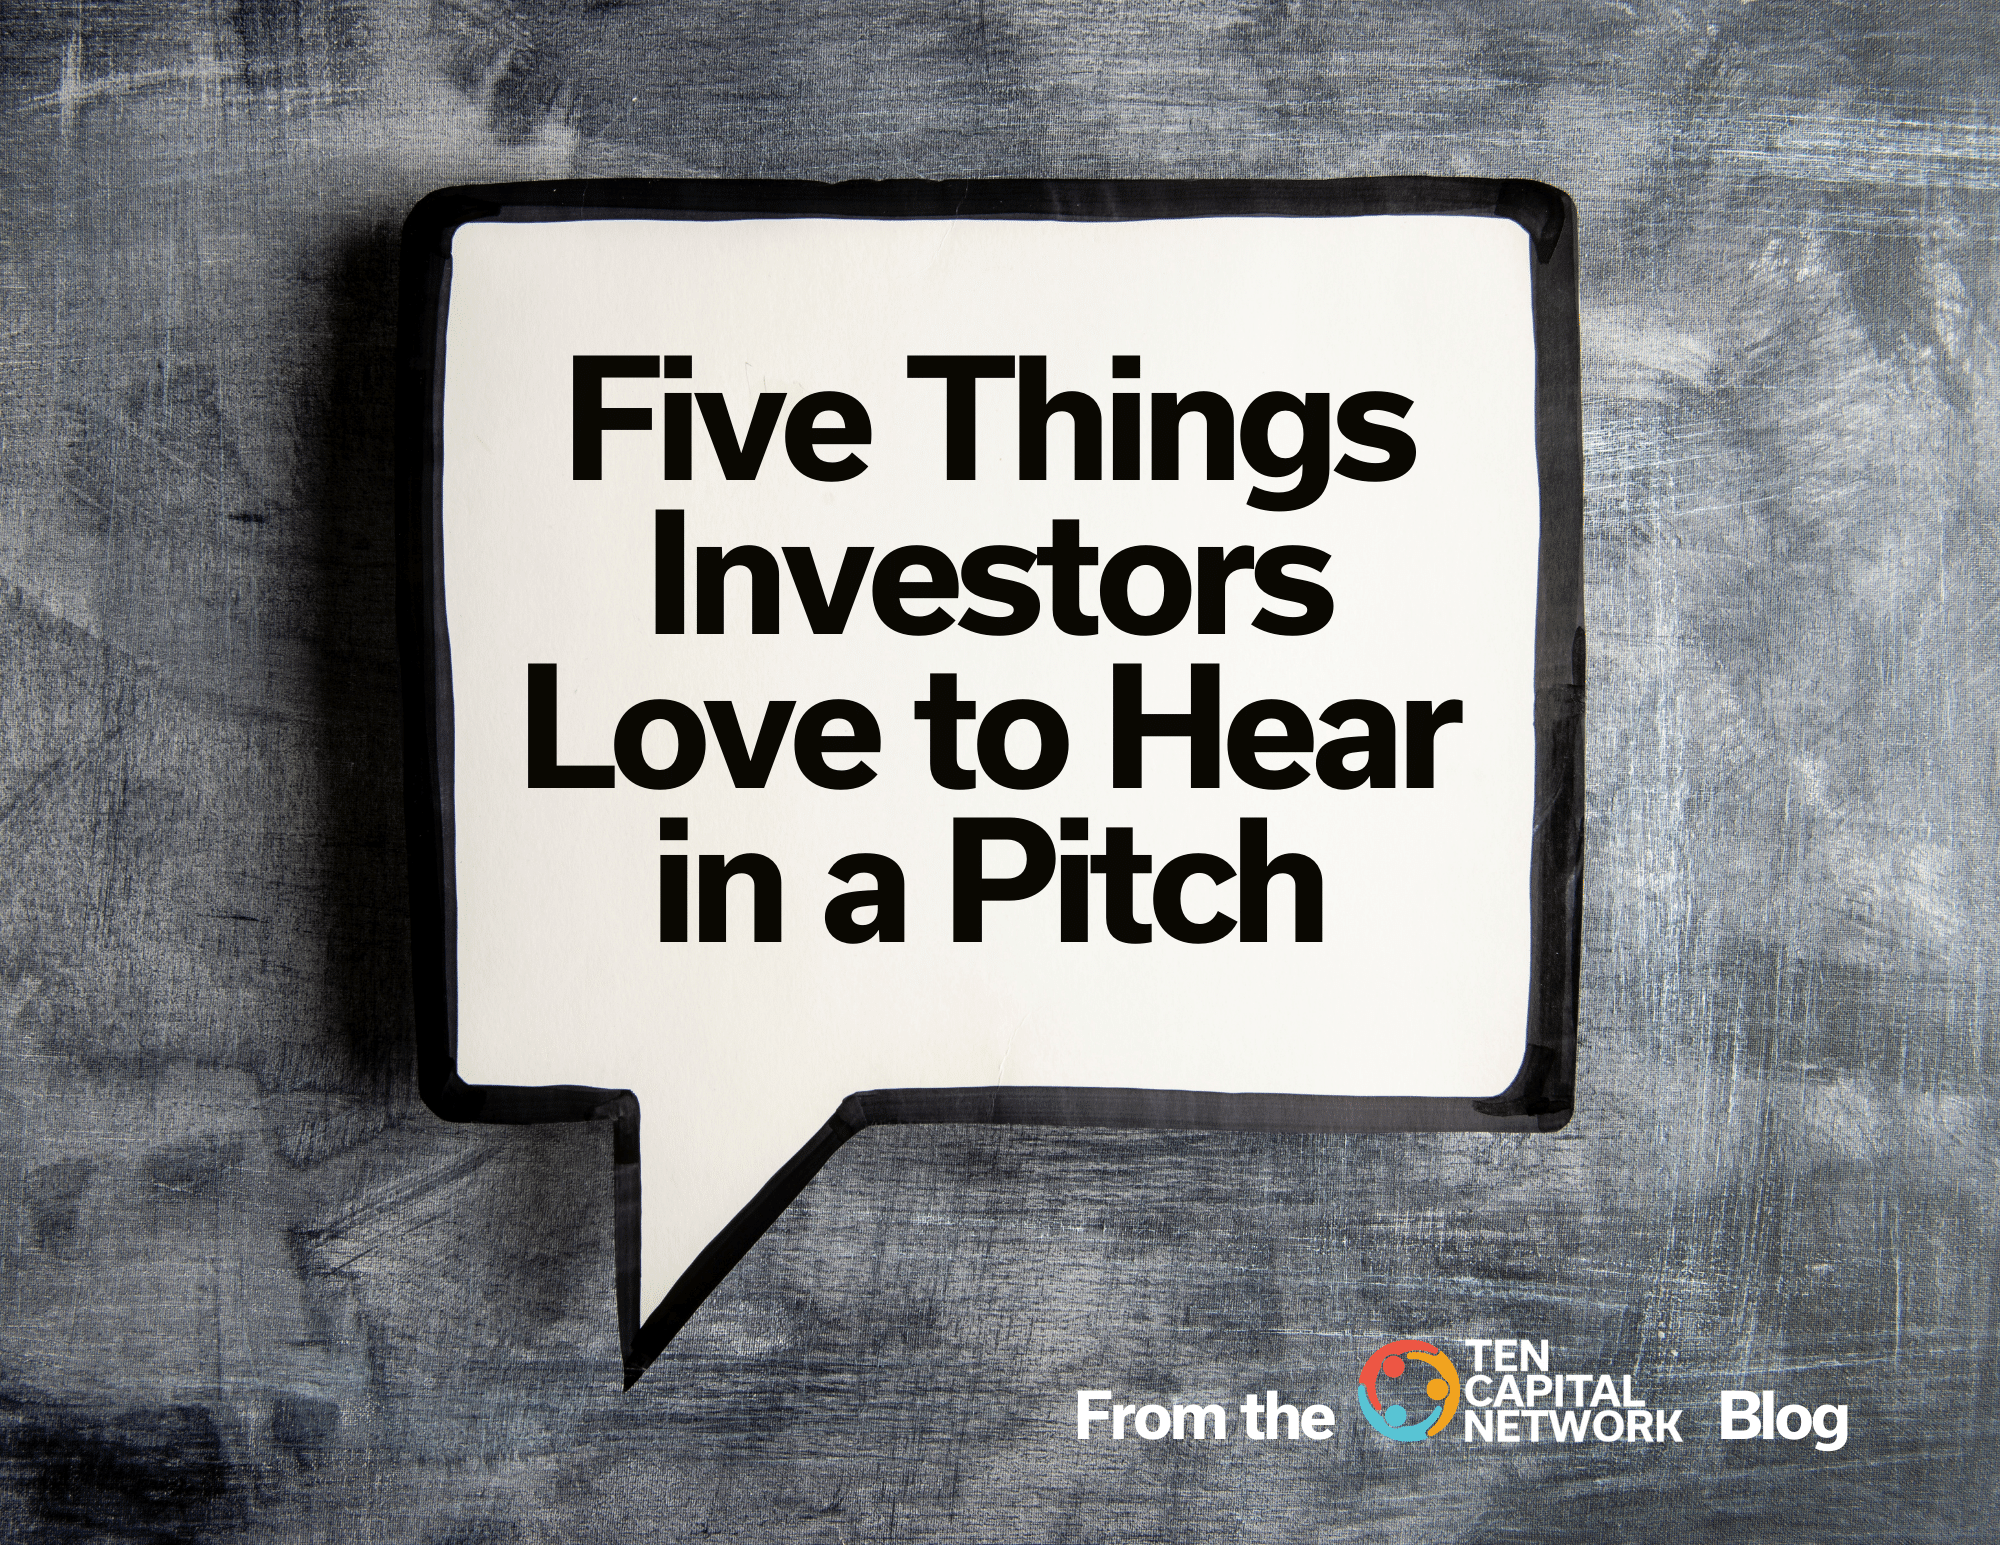 Five Things Investors Love to Hear in a Pitch